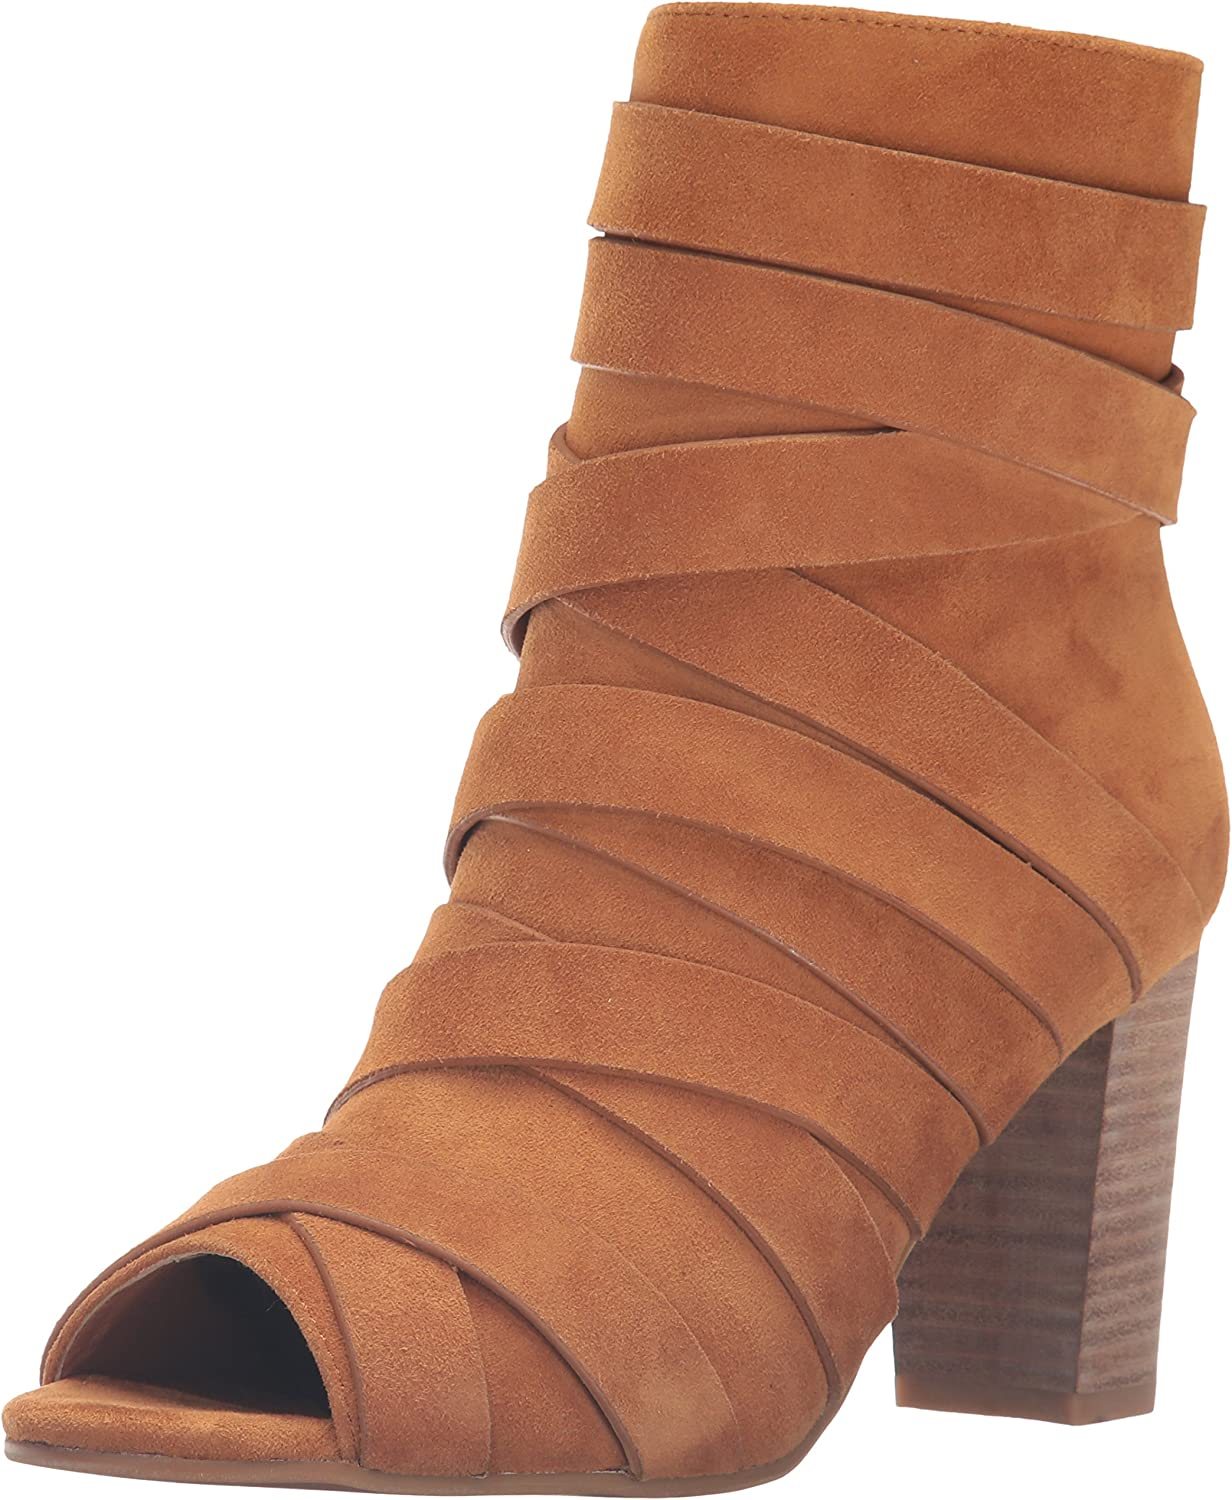 Sbicca Womens Arioso Ankle Bootie